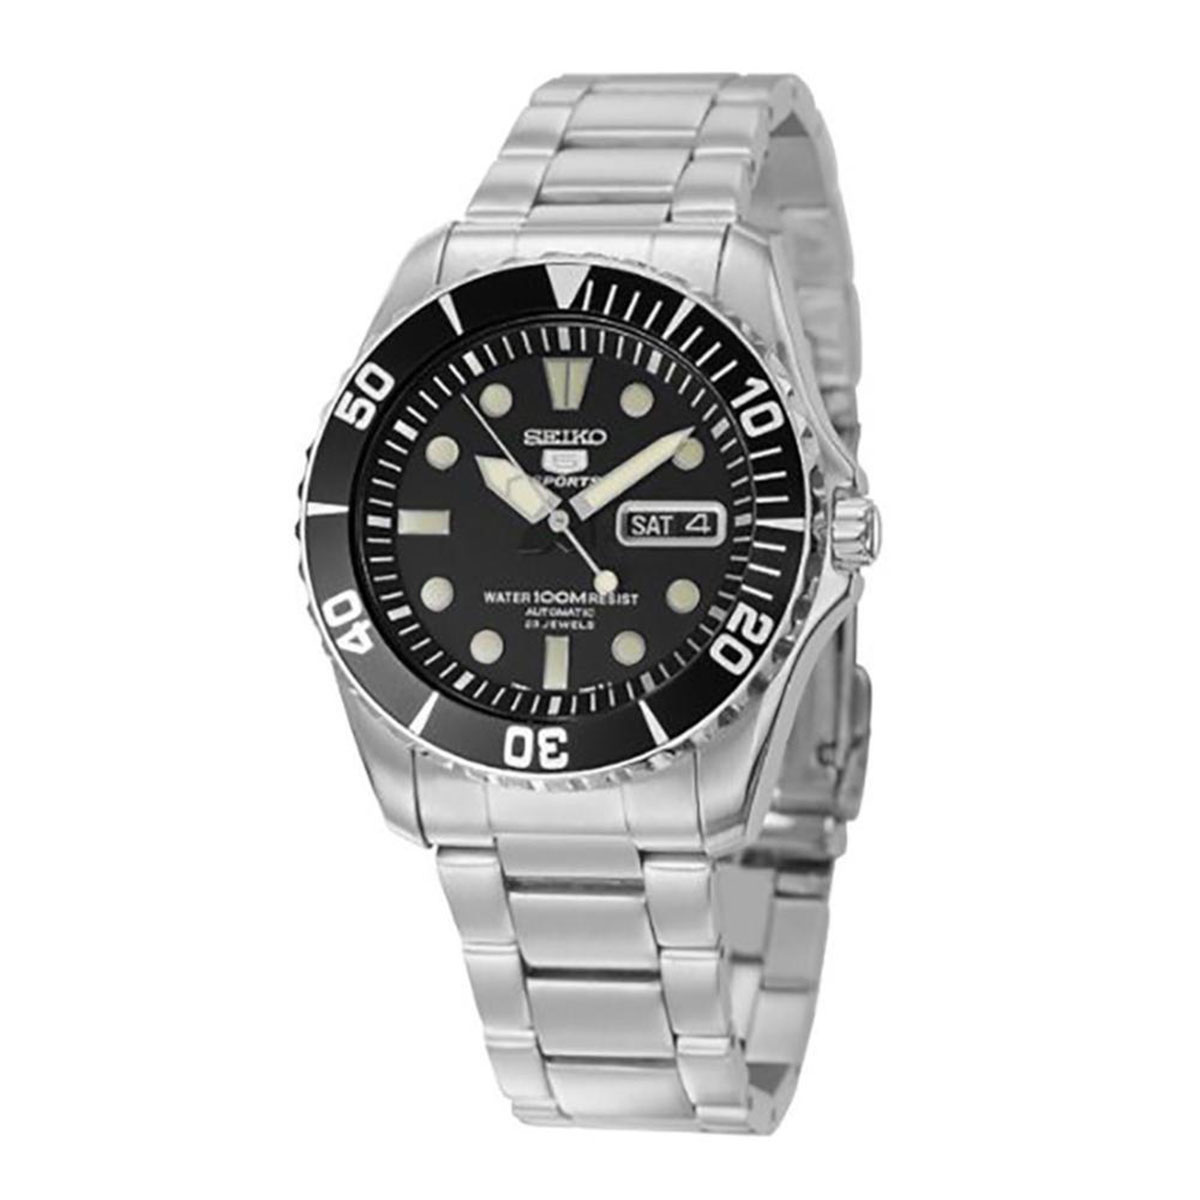 Seiko Analog Sport Mens 5 SPORTS  JAPAN Watch SNZF17J1 - <span itemprop='availableAtOrFrom'>UK, United Kingdom</span> - 1. Refund Policy : Refund will only be made if there is a manufacturing fault or DOA or we made a mistake. 2. Watches that have been resized, damaged, or otherwise altered after delivery will  - UK, United Kingdom